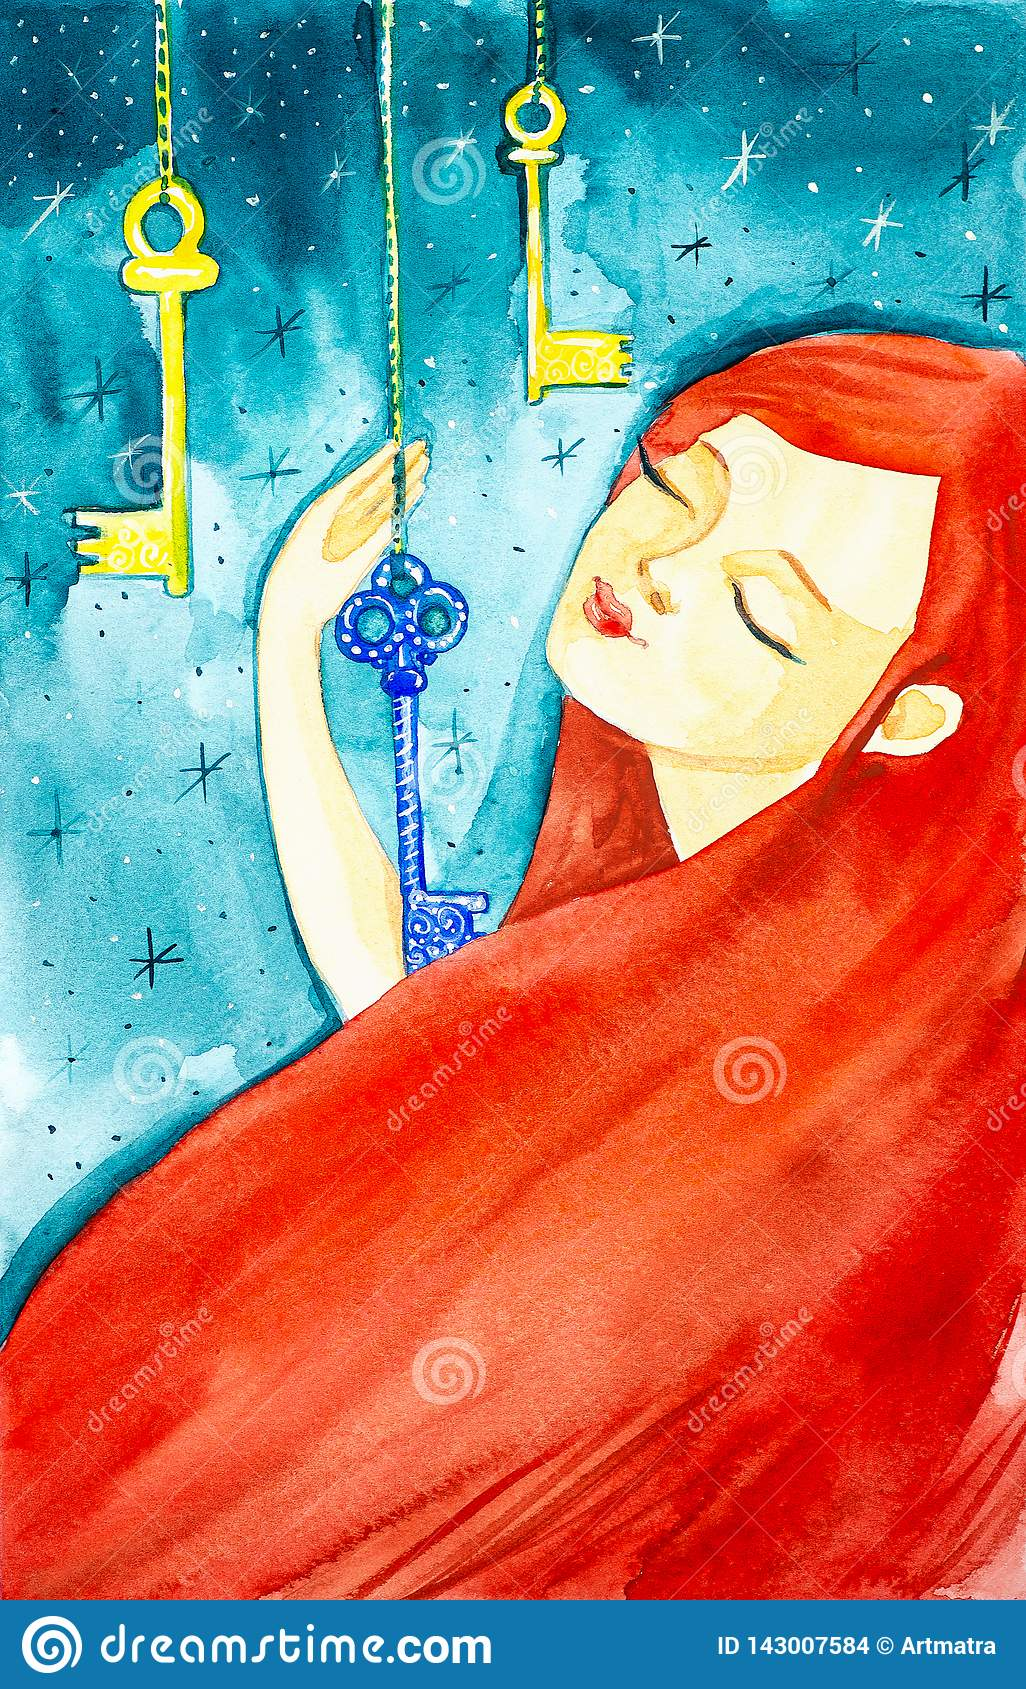 Portrait of a beautiful girl with long red hair and closed eyes. The girl holds one of the three fabulous keys hanging from the